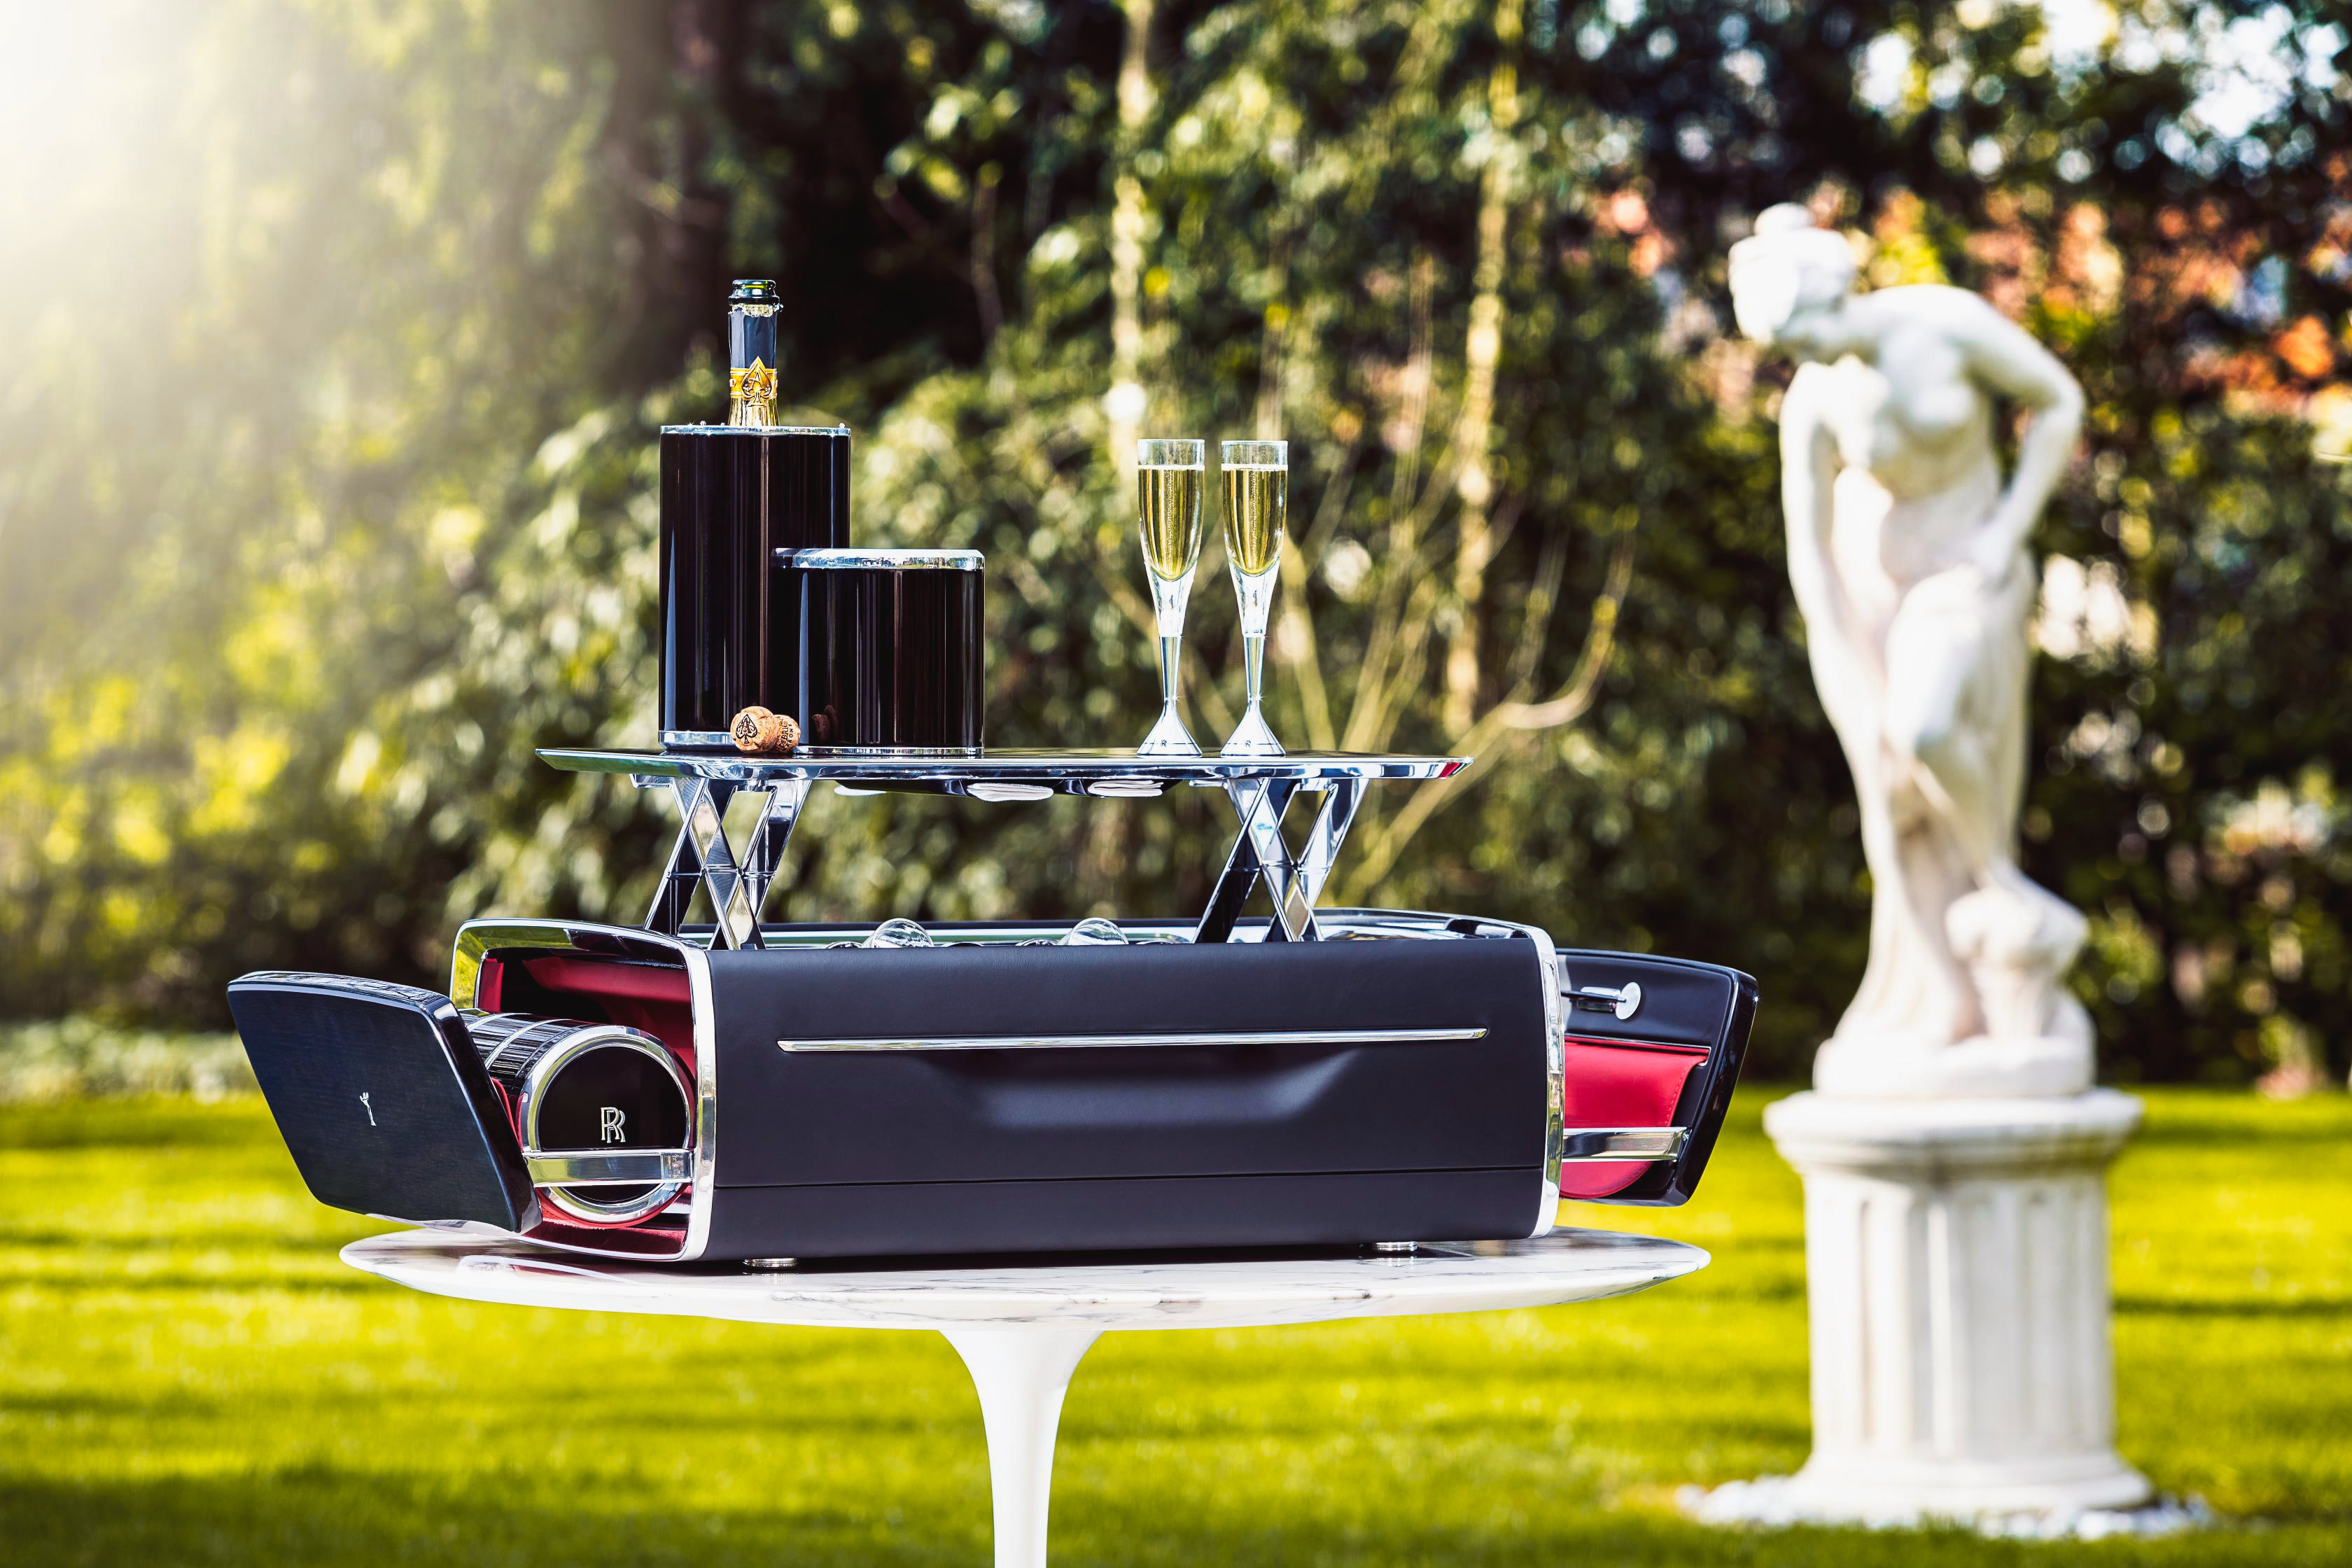 Rolls-Royce is making picnics cool again with this new champagne chest